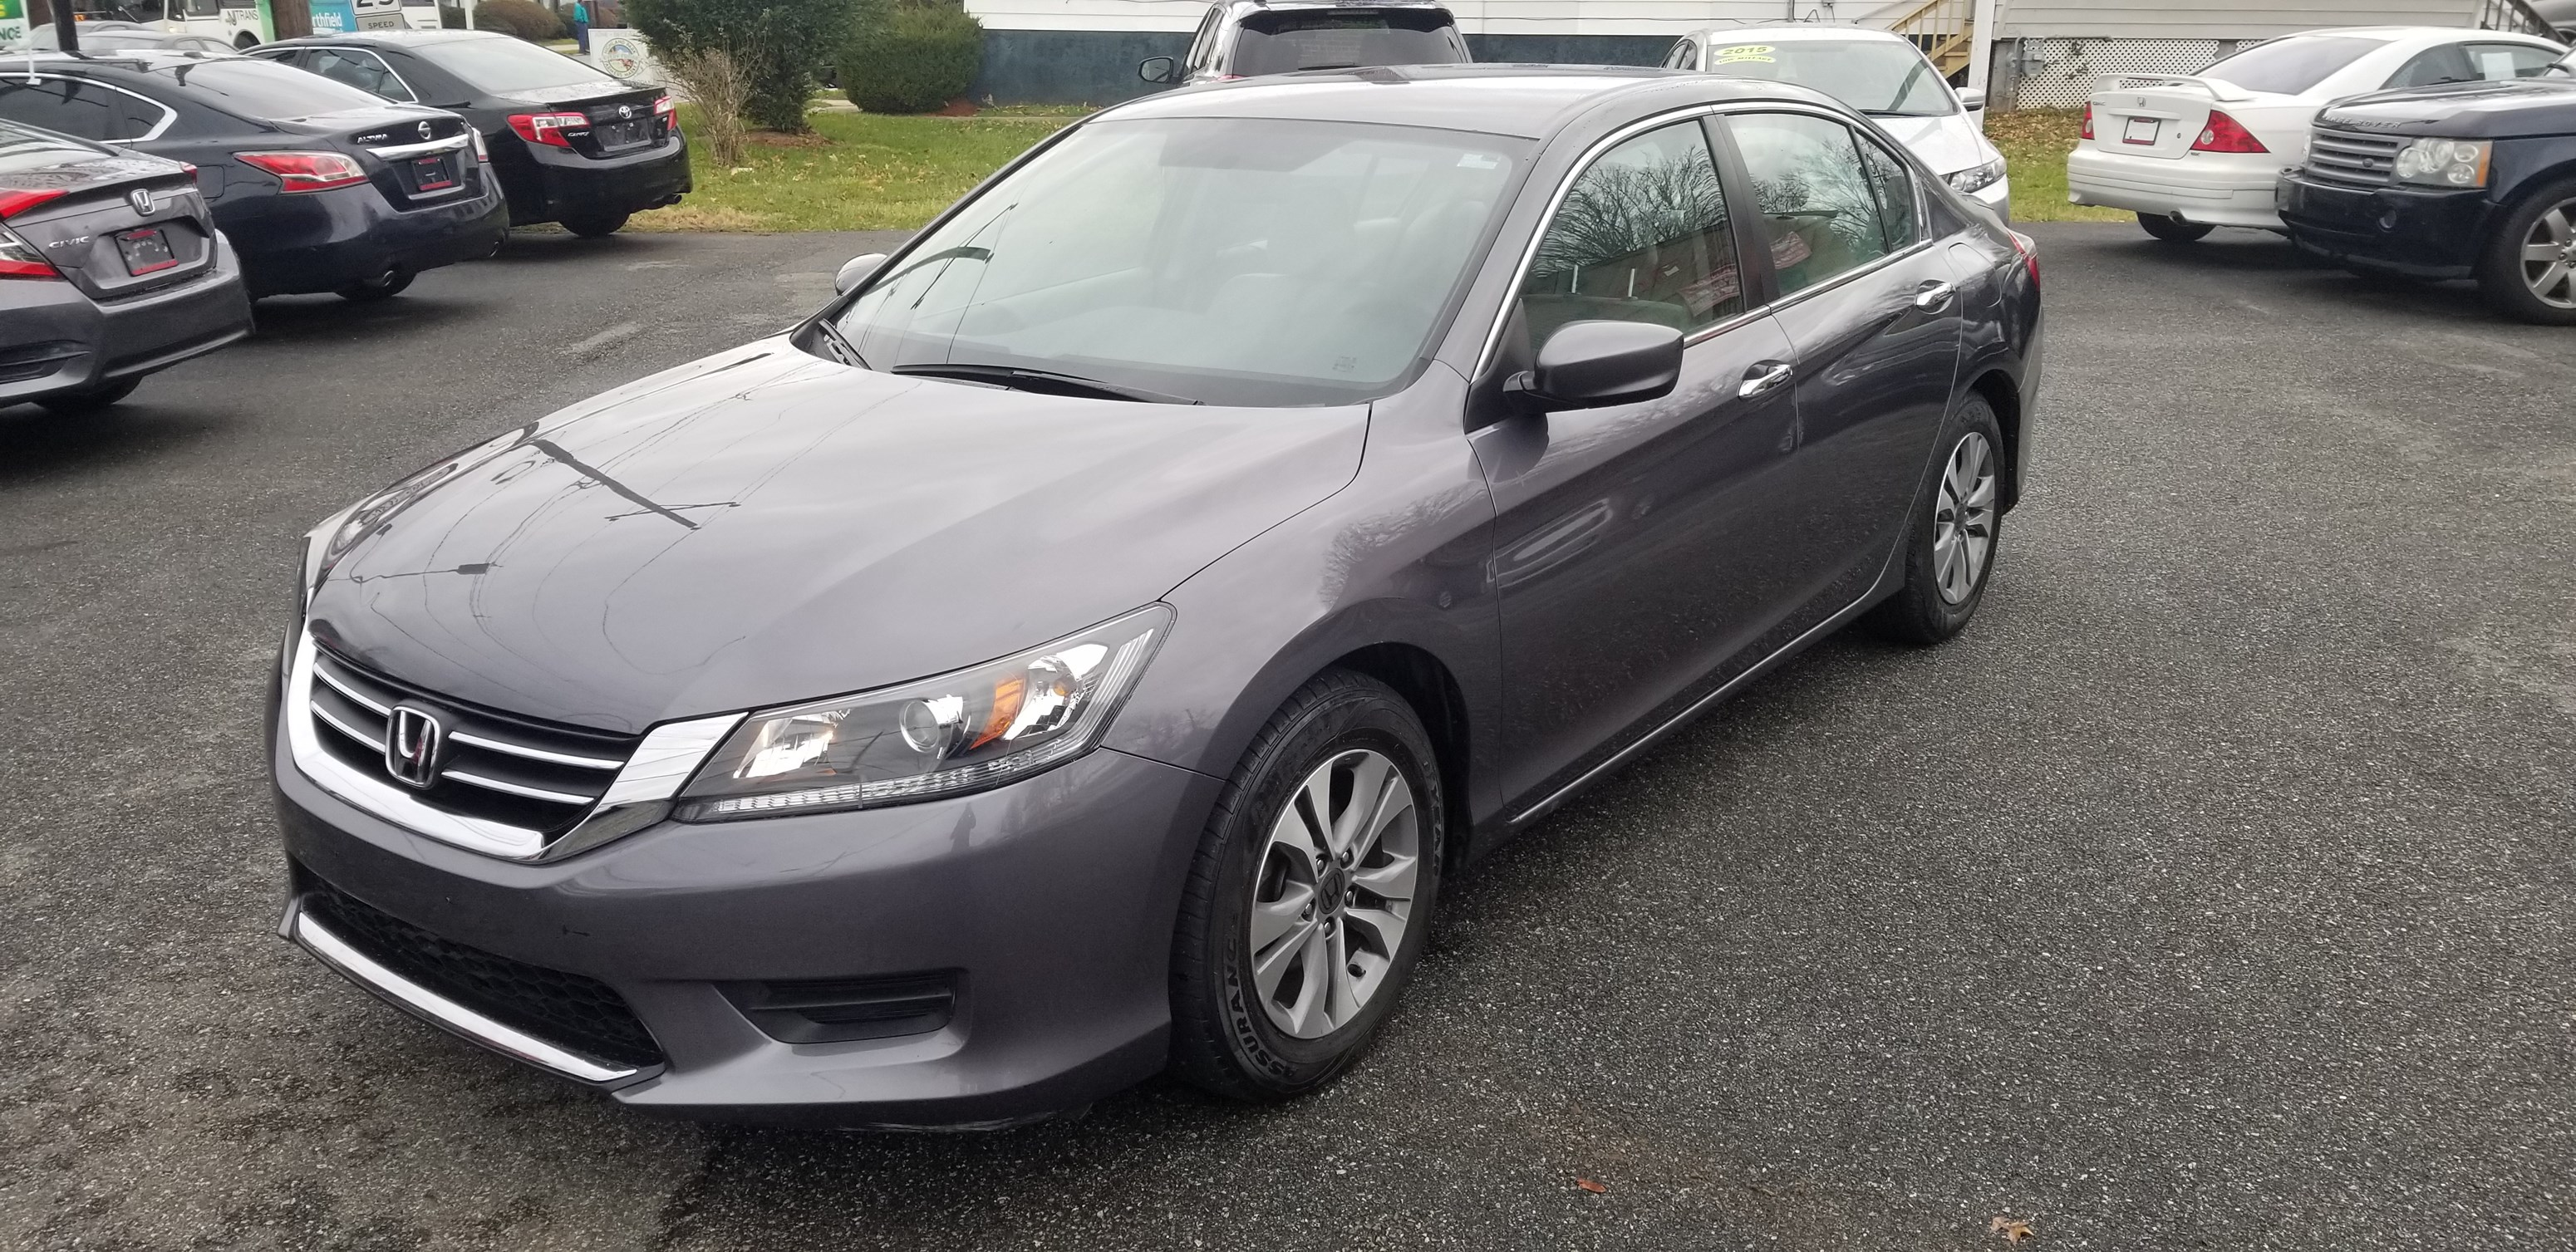 Carfax Used Cars Raleigh Nc Inspirational 2015 Honda Accord Lx 2 4l 4 Cylinder Clean Title Clean Carfax